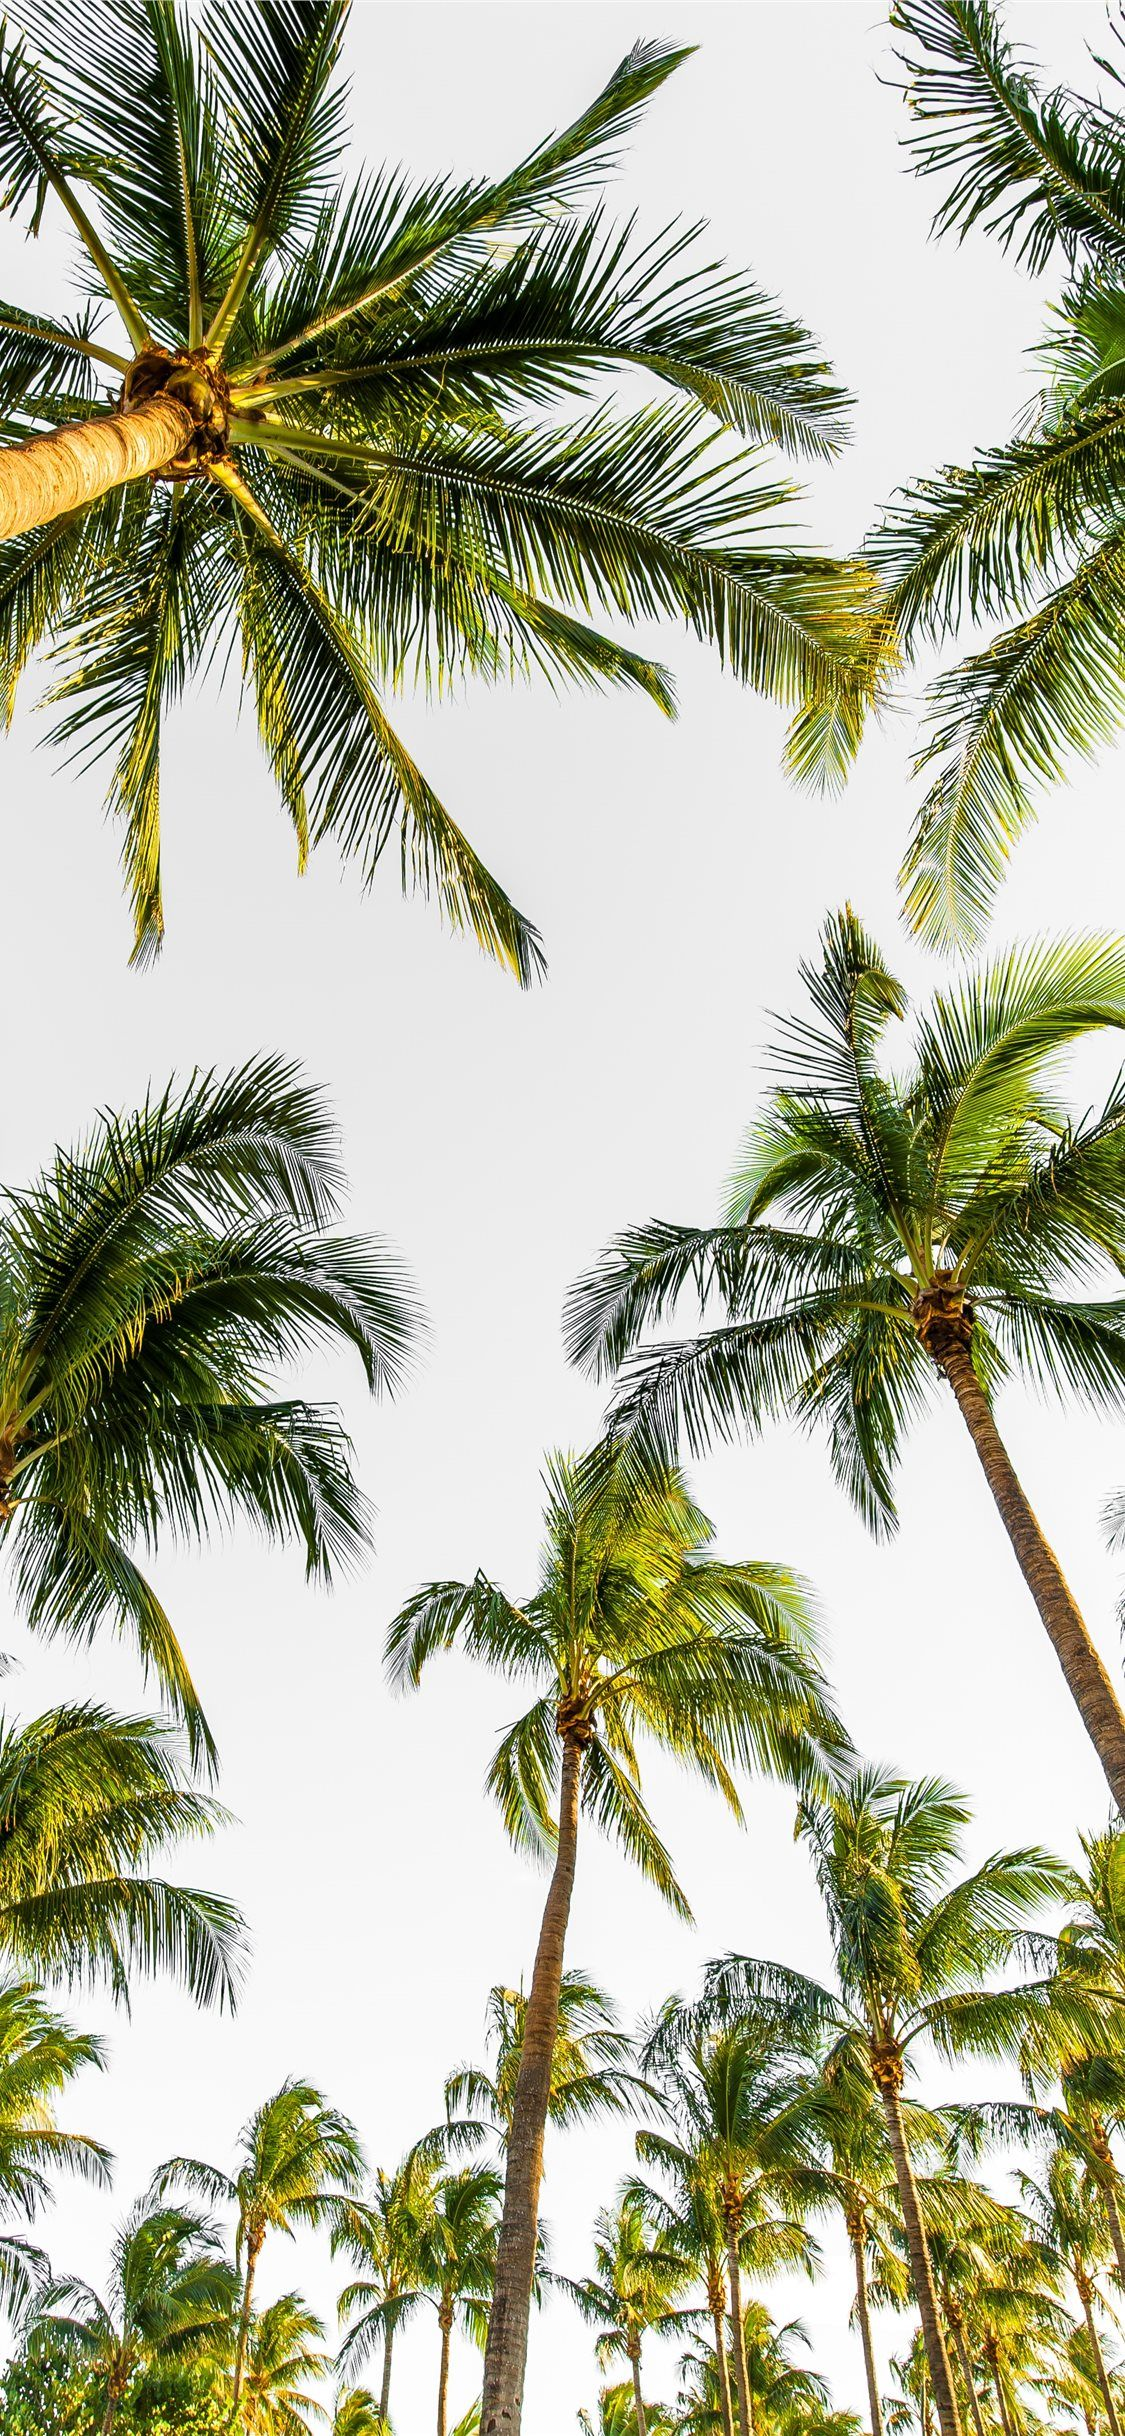 5 Awesome Iphone 8 Iphone 11 Or Iphone 11 Pro Wallpapers 93 Tree Wallpaper Iphone Beach Wallpaper Iphone Palm Tree Iphone Wallpaper